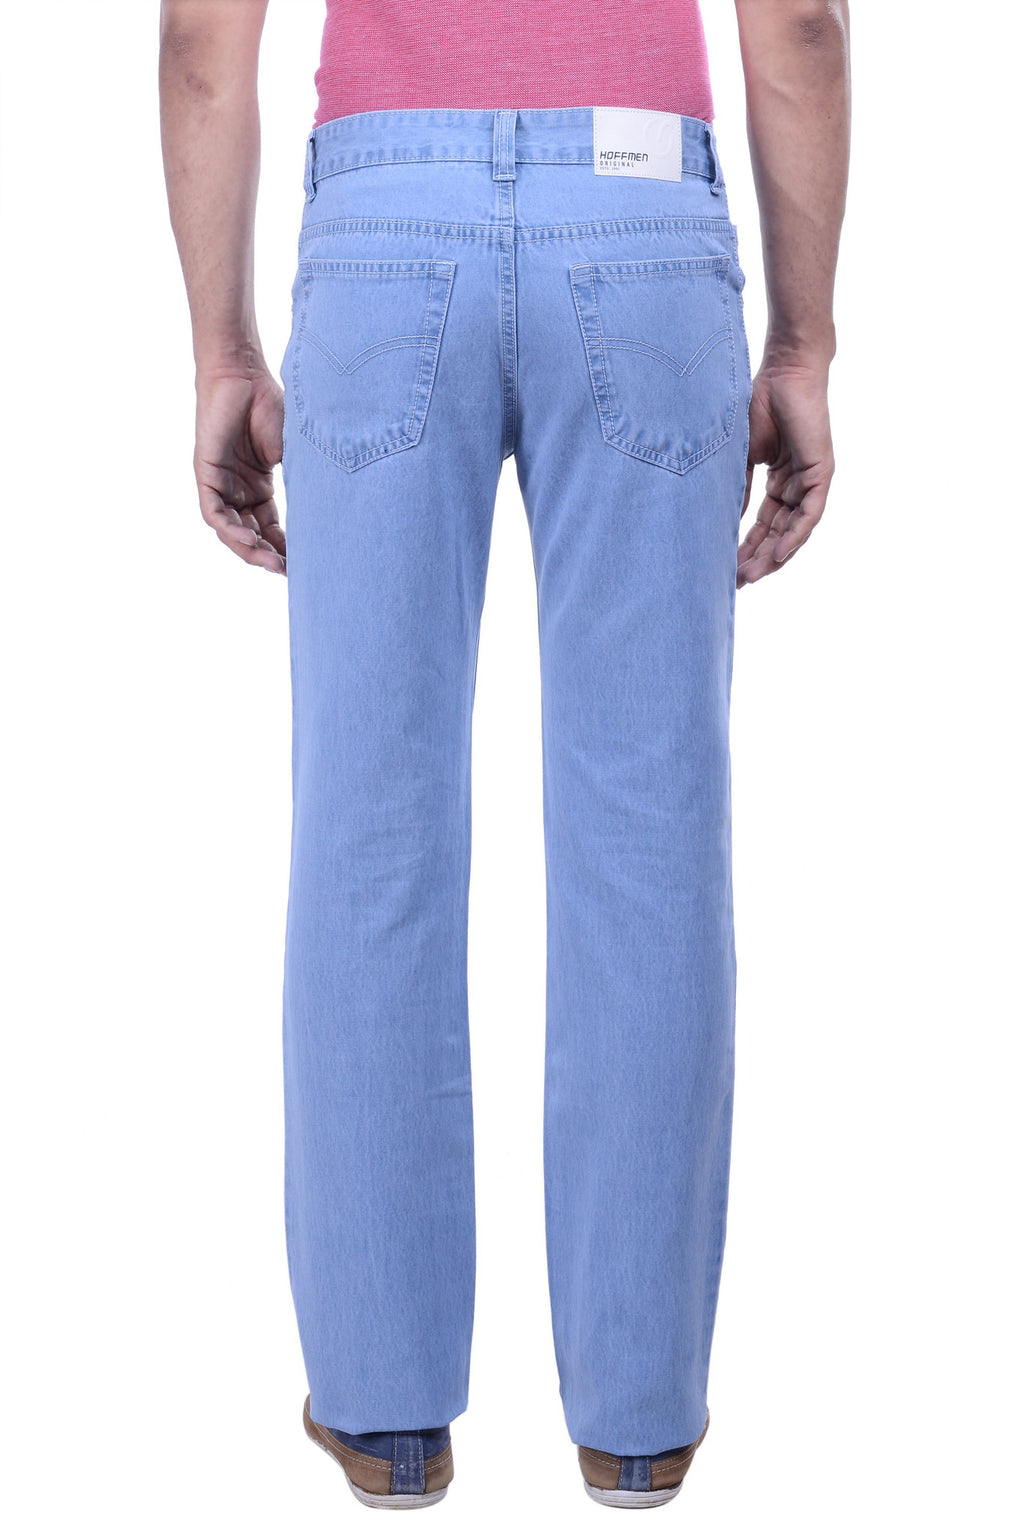 Hoffmen Icewash Regular Fit Silky Denim SDG-2120